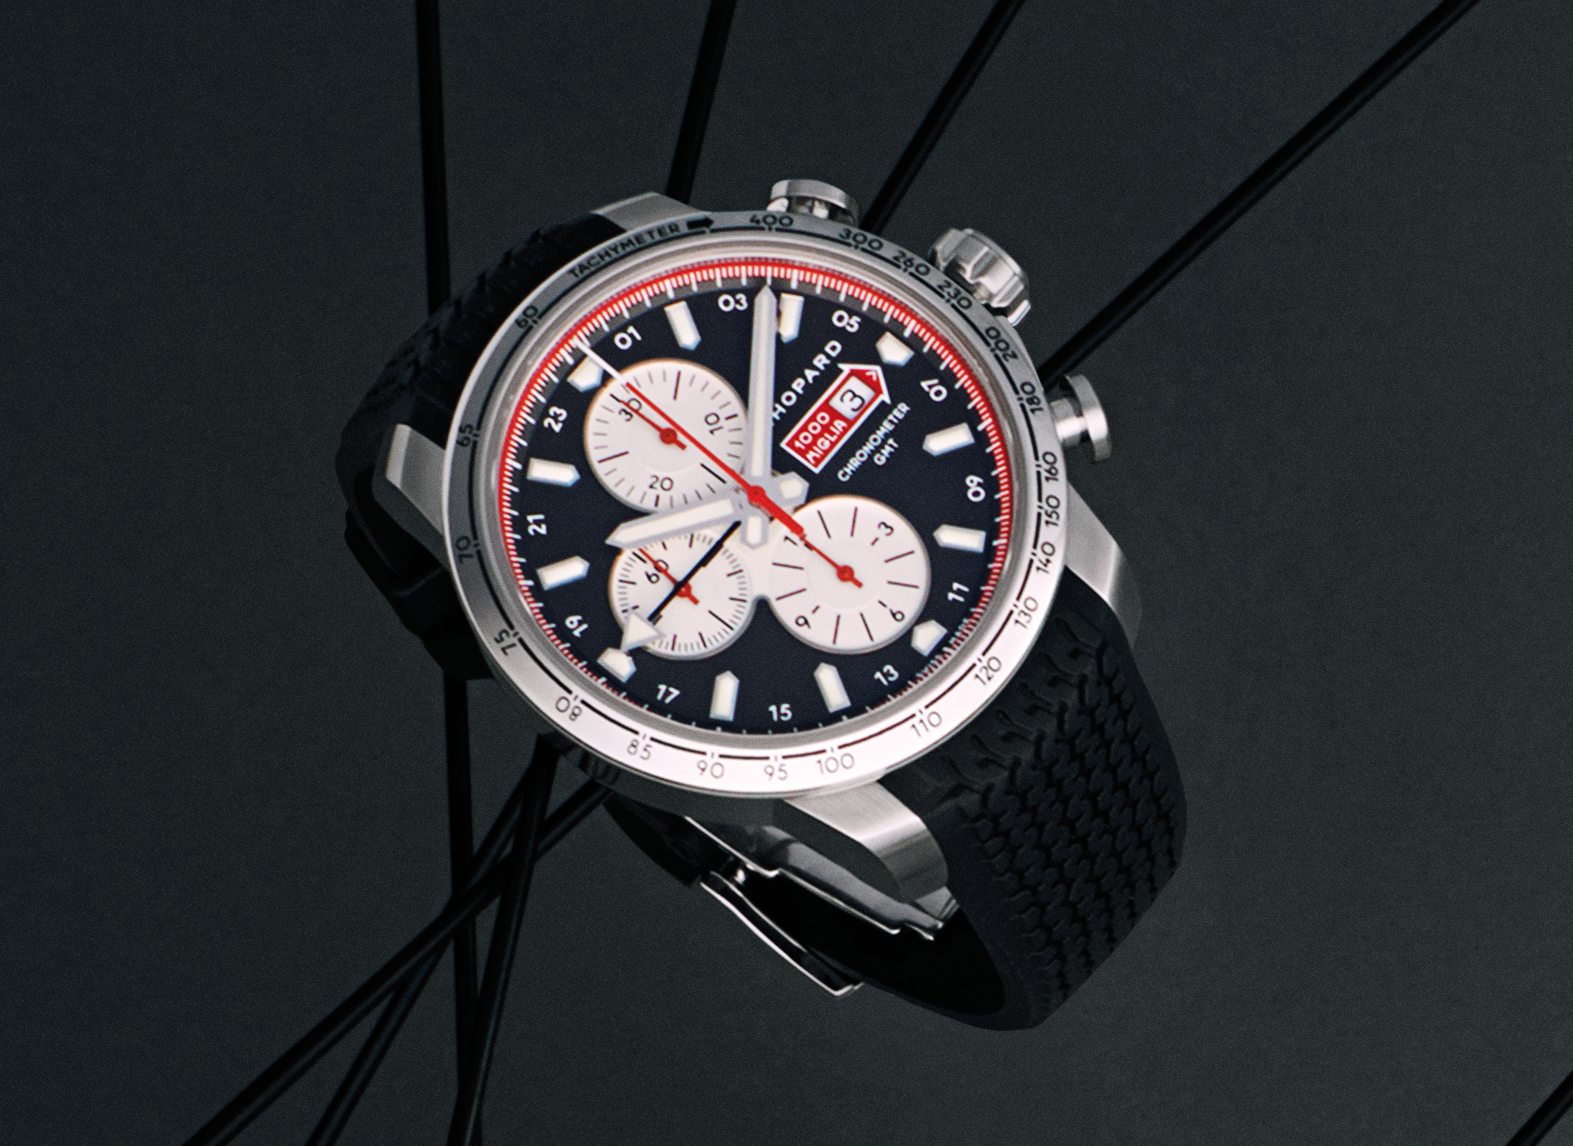 Chopard, Mille Miglia Chronograph  2013 with automatic movement  in steel with rubber wristband,  price app. 7,850 USD, Nymans Ur 1851.